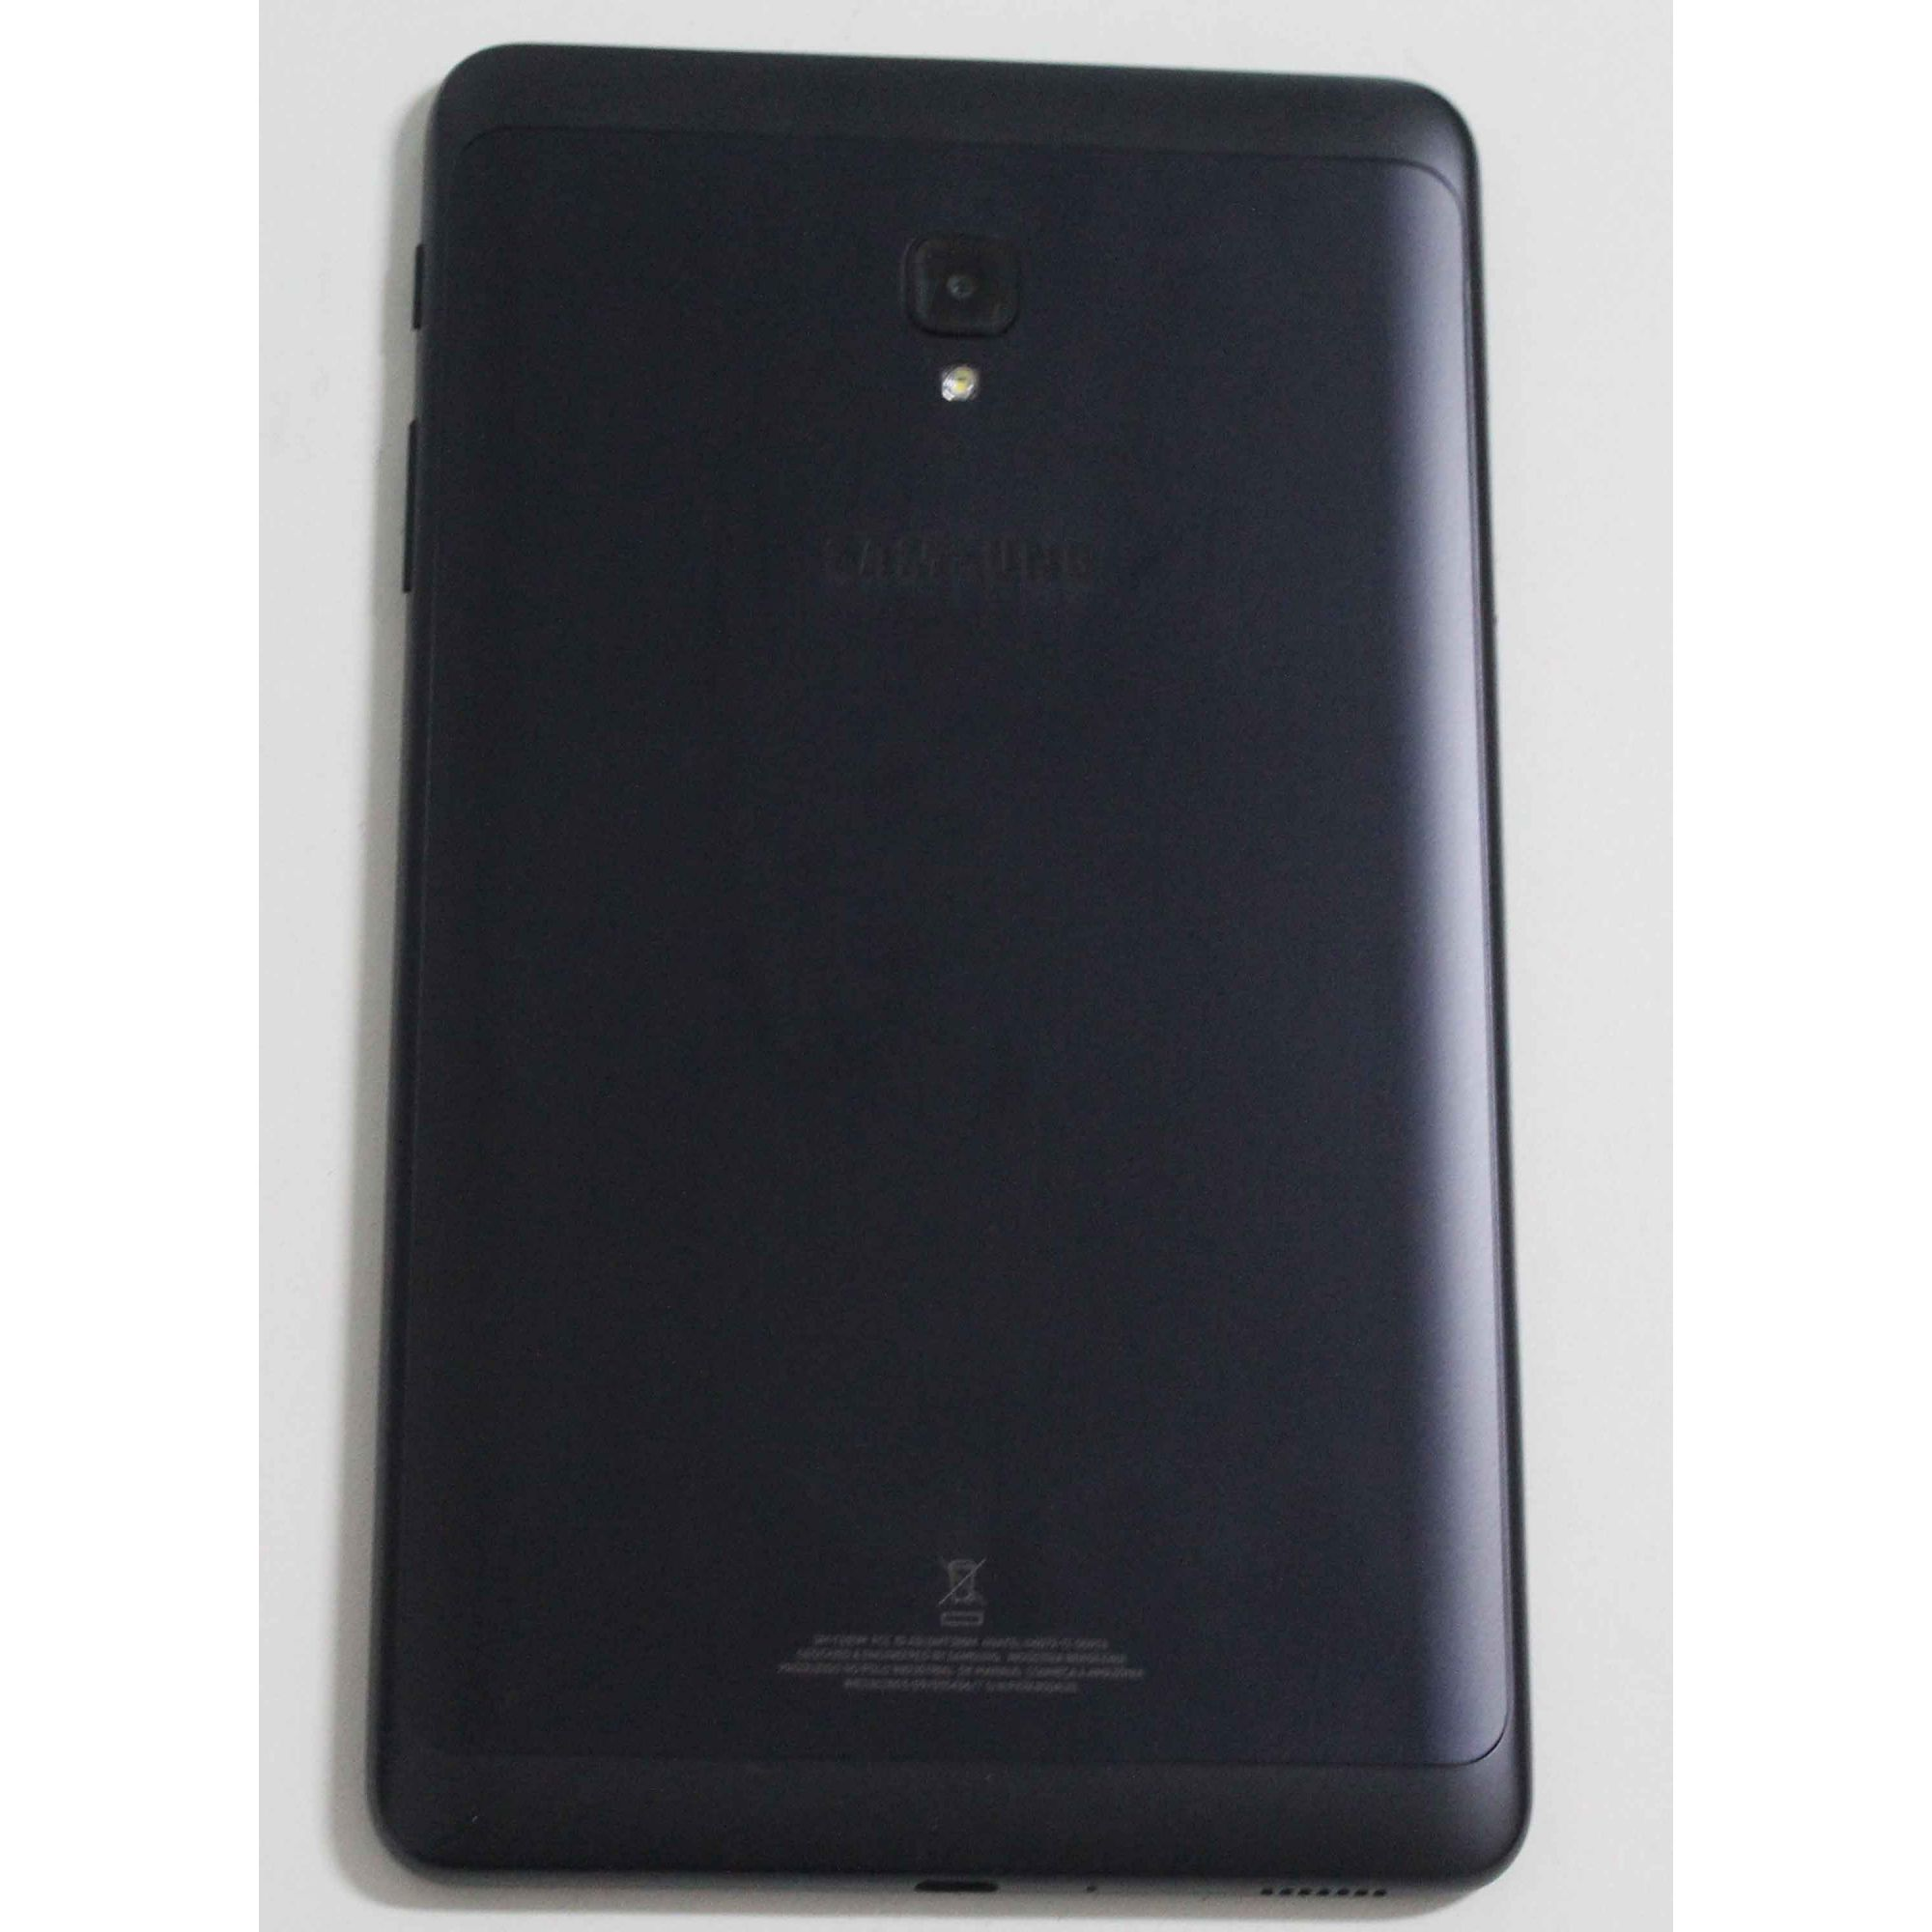 Tablet Samsung Galaxy Tab A SM-T385M 8'' QuadCore, 16GB Wifi + 4G